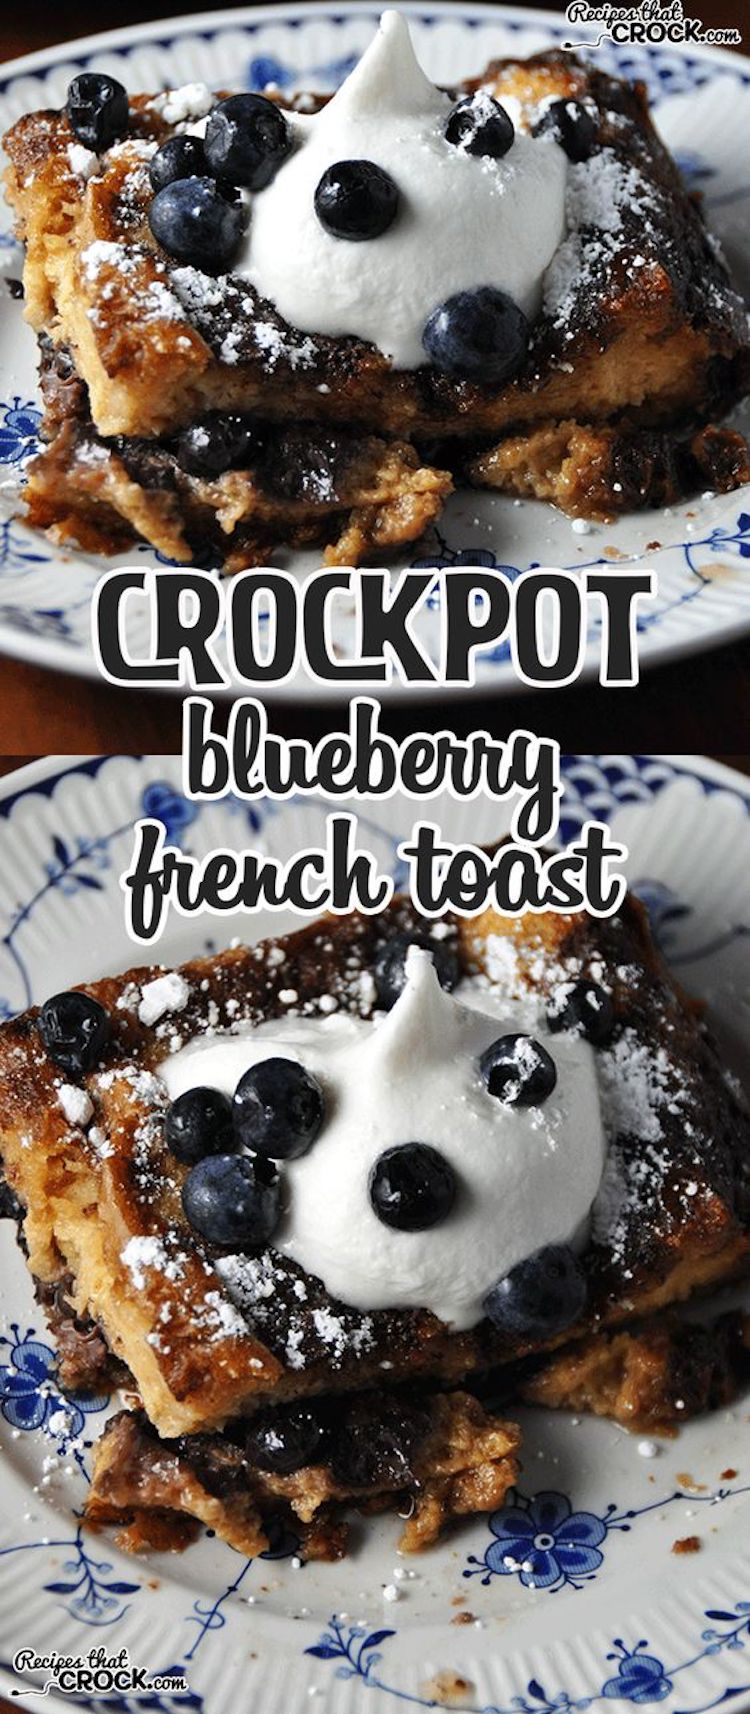 Crockpot Blueberry French Toast